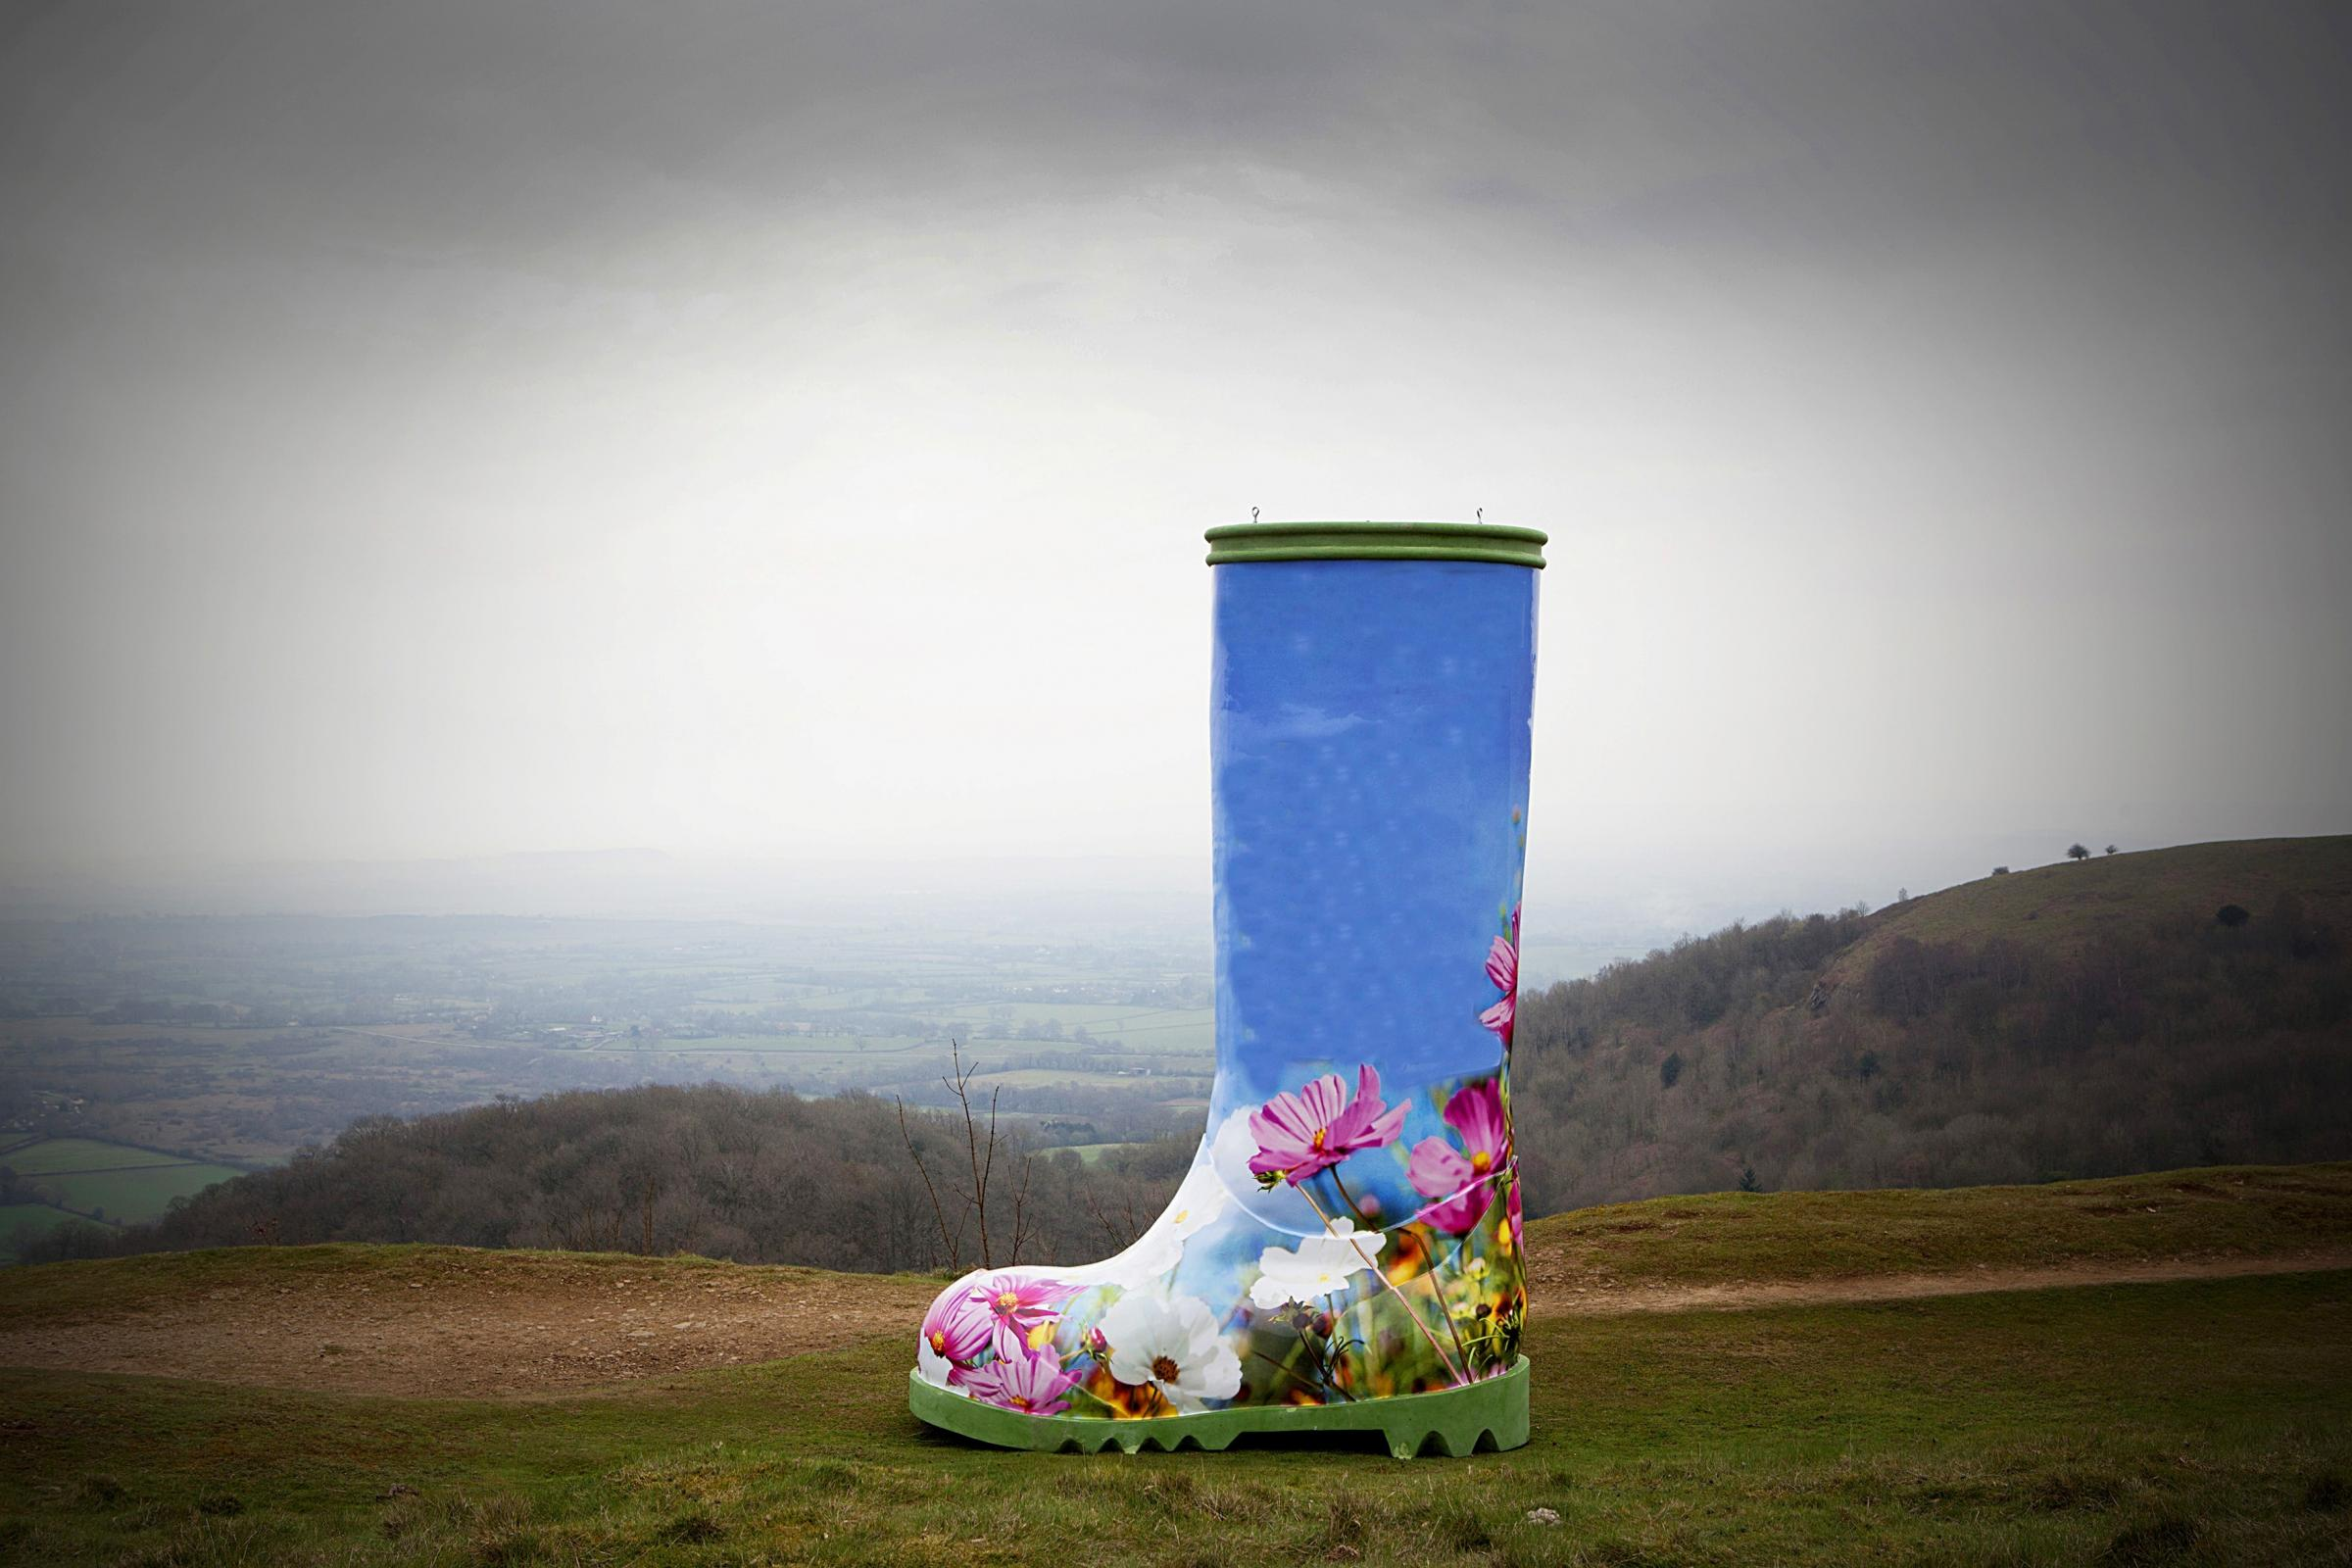 Controversial new art installation to give tourism some welly